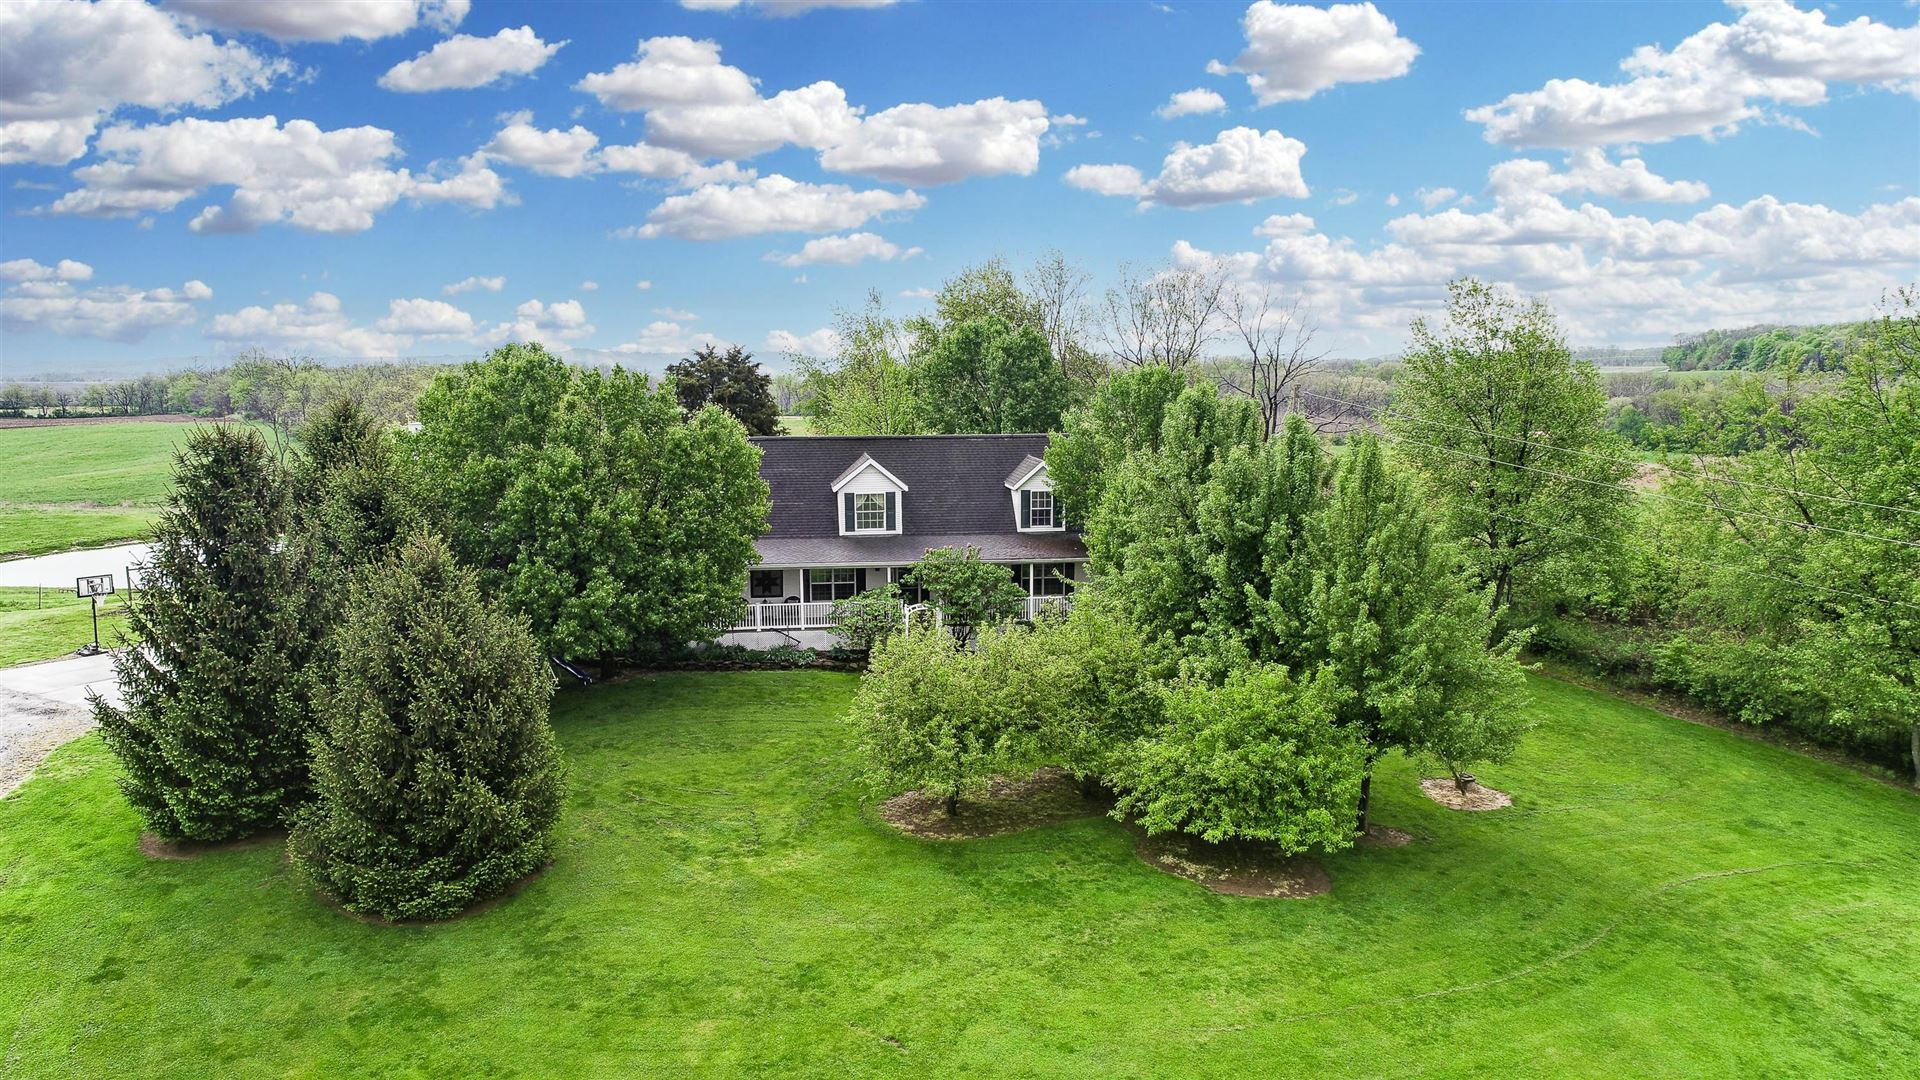 Photo for 8231 Rapid Forge Road, Greenfield, OH 45123 (MLS # 221014338)